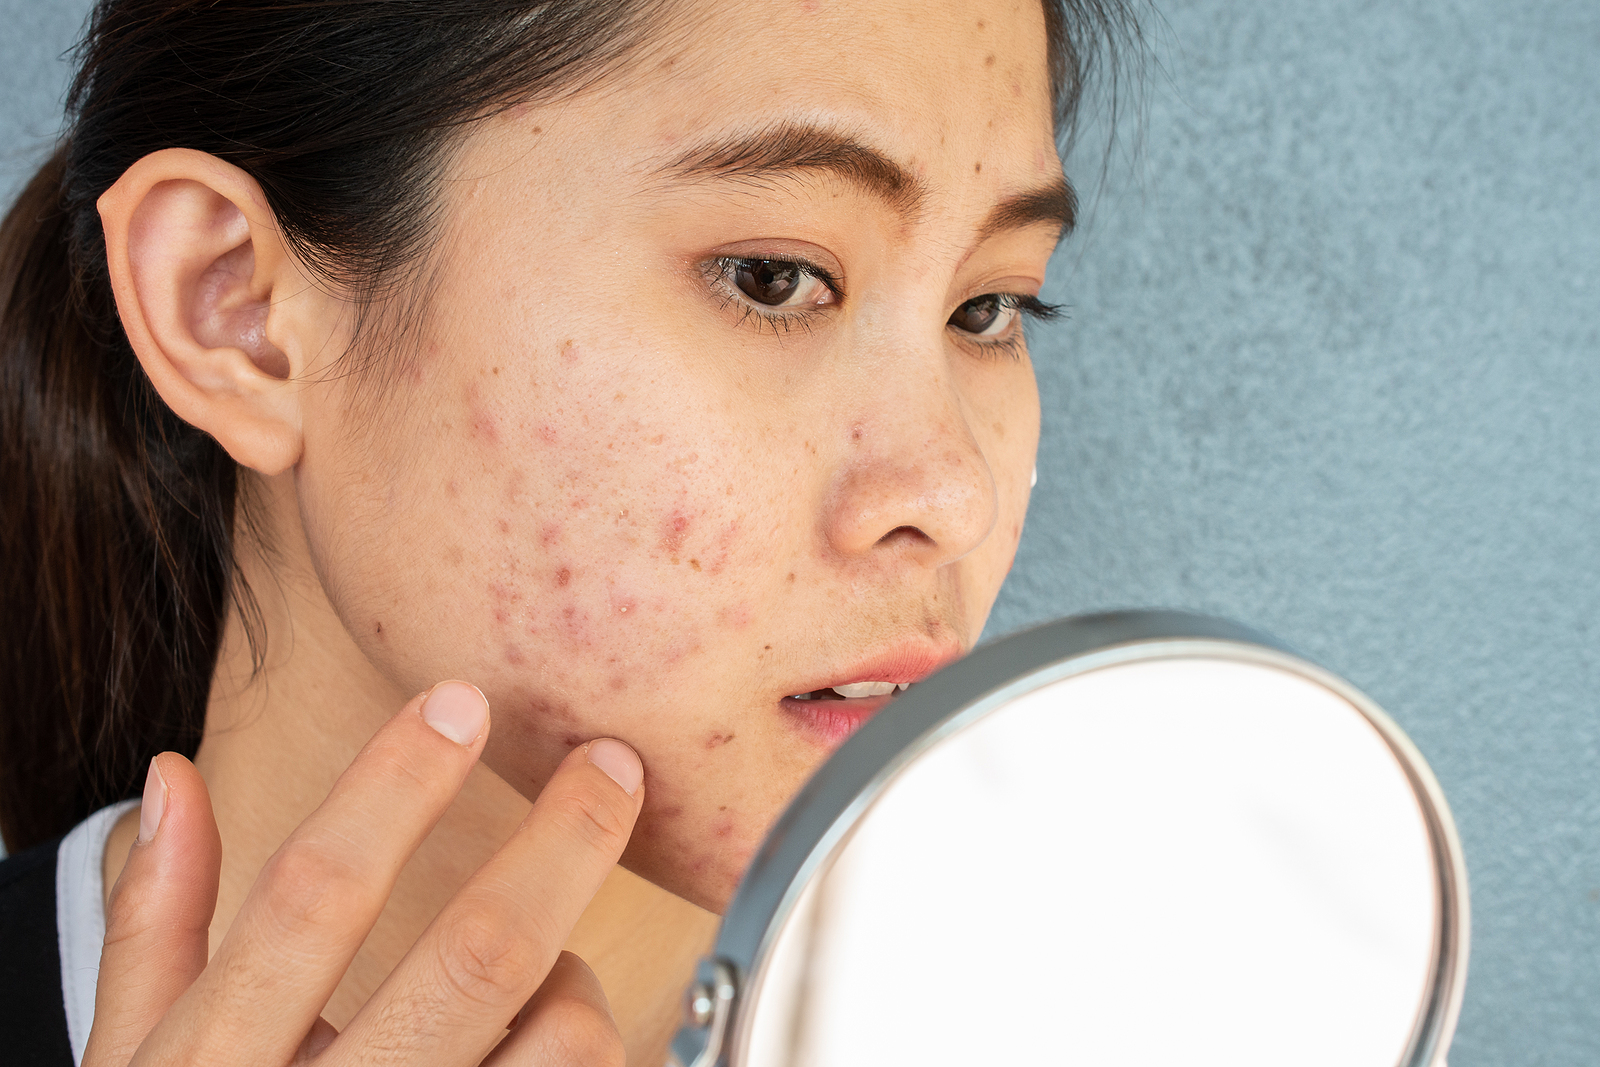 Facial Plastic Surgery Candidate with Acne